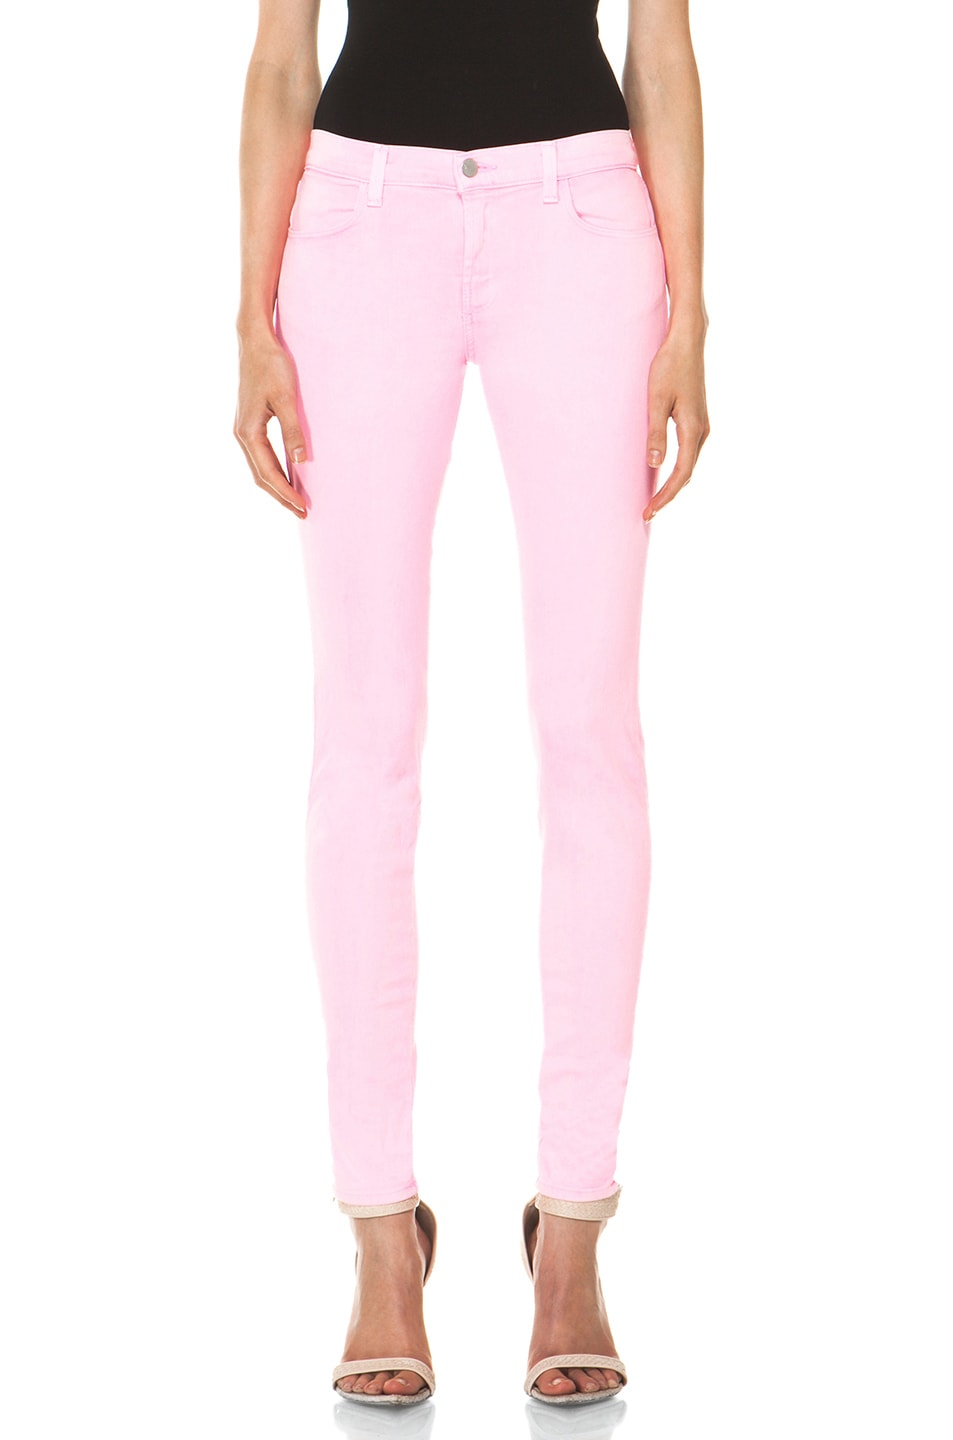 Image 1 of J Brand PINK PARTY EXCLUSIVE Midrise Super Skinny in Pink Party